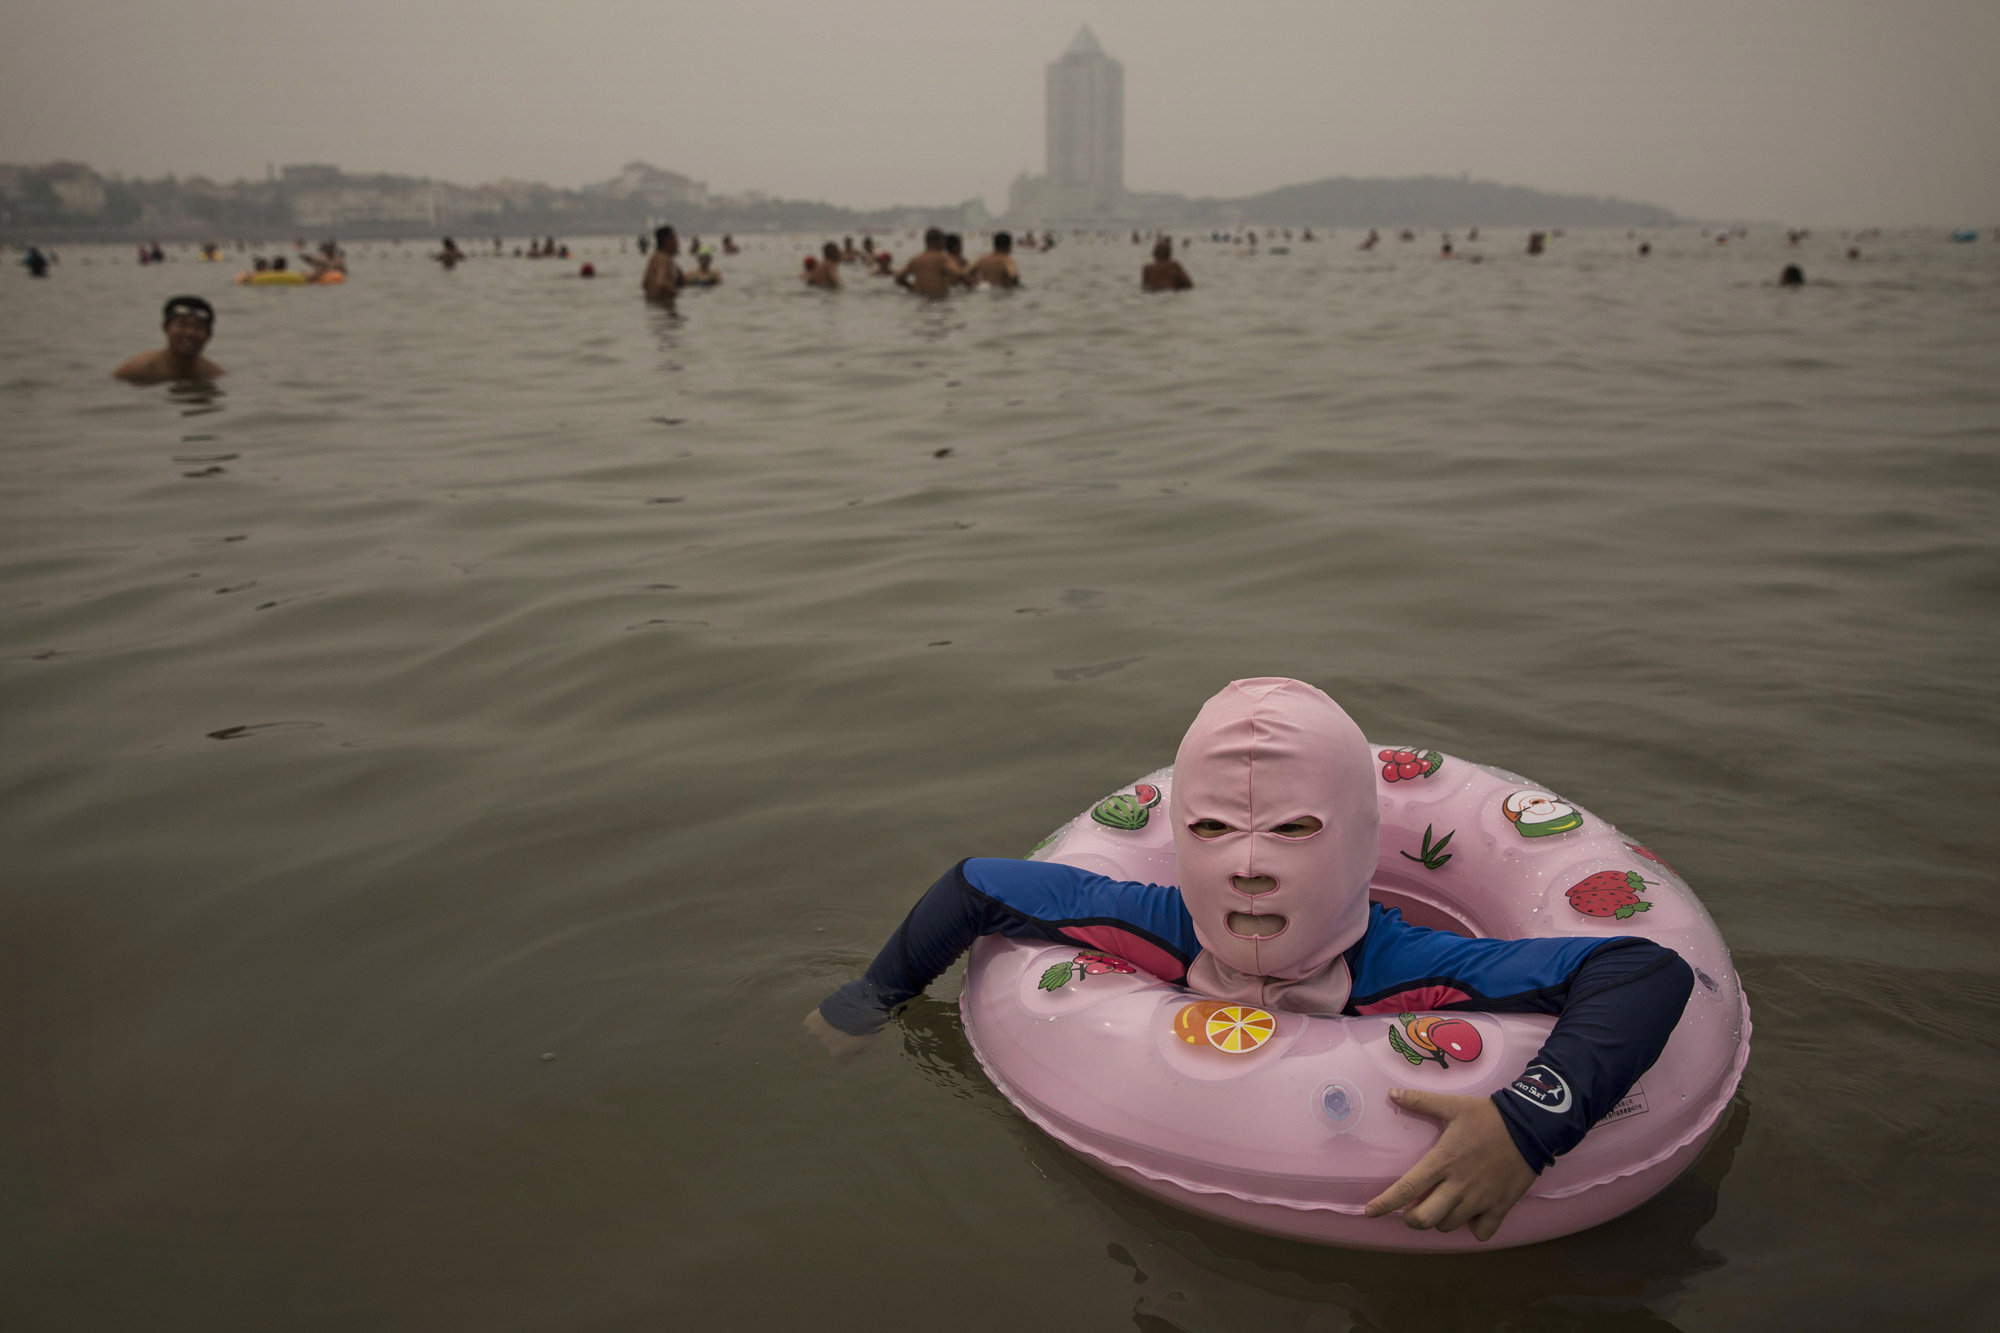 A girl wears a facekini as she floats in the water on Aug. 21, 2014, on the Yellow Sea in Qingdao.